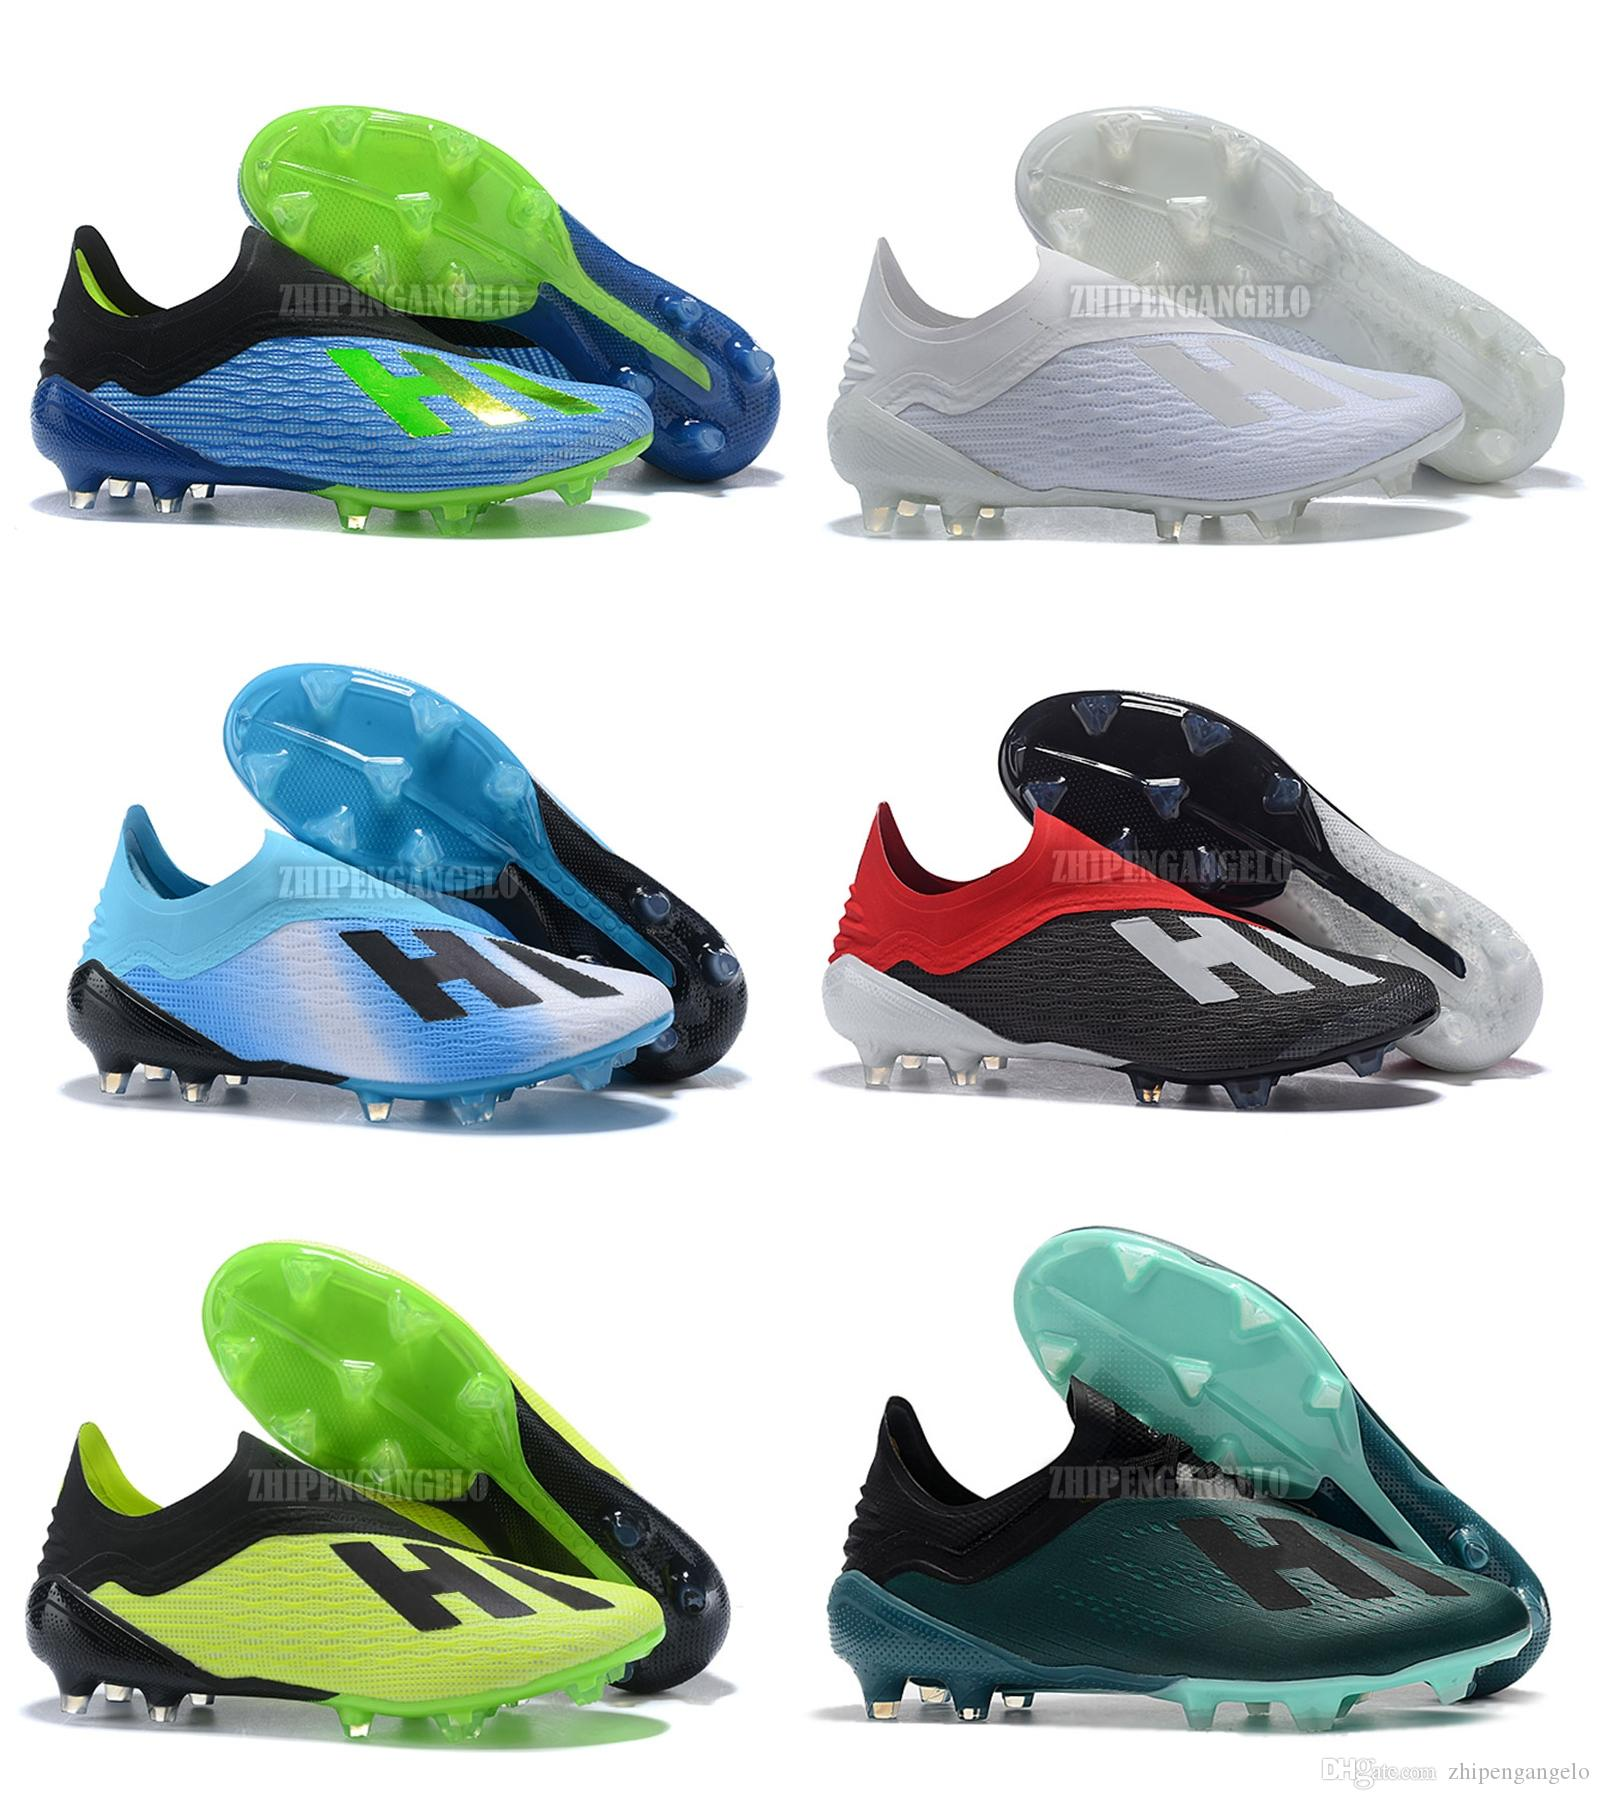 04cf092c9 2019 2018 World Cup X 18+ Purespeed FG Football Boots Original Quality X  18+ Soccer Cleats Laceless Mens Soccer Shoes From Zhipengangelo, $43.41 |  DHgate.